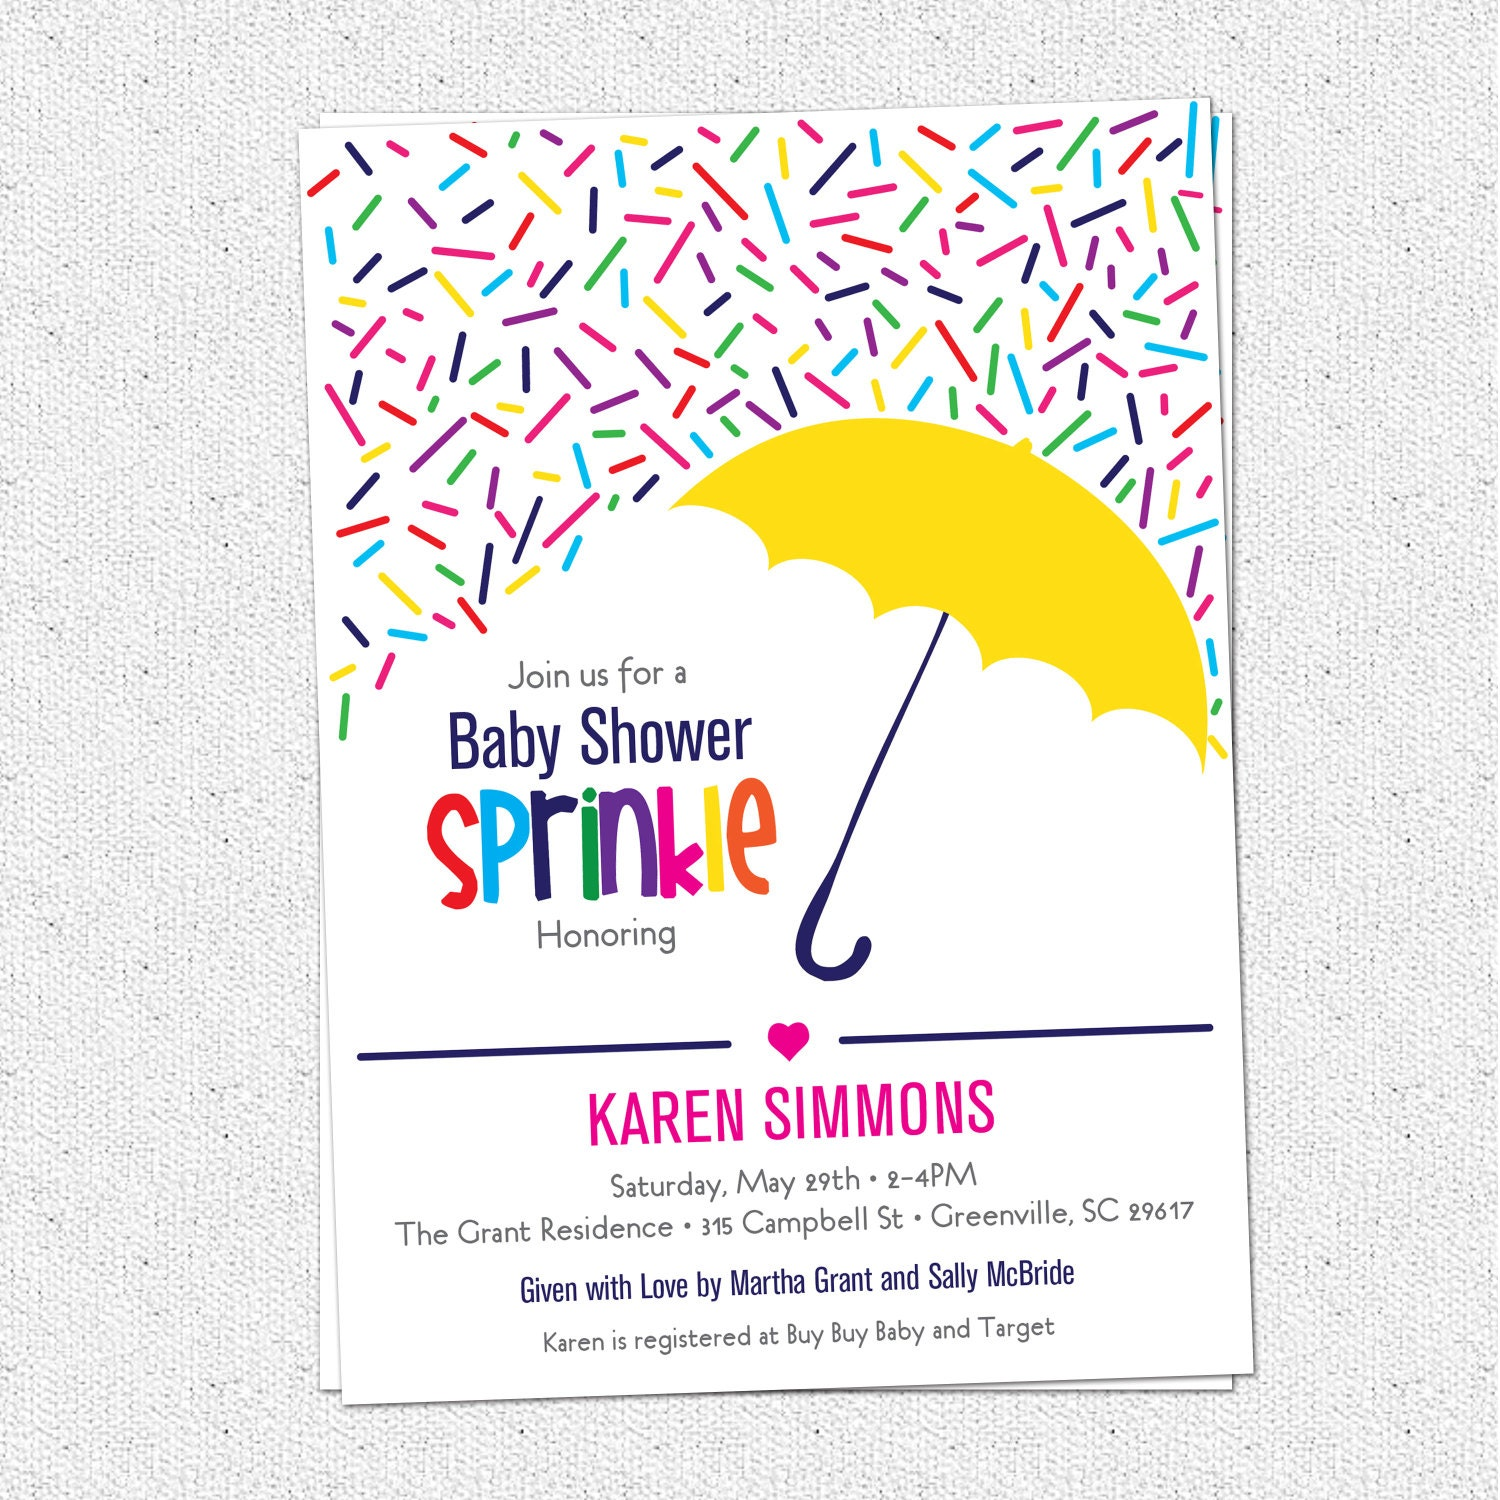 Second Baby Shower Invitations as good invitation ideas